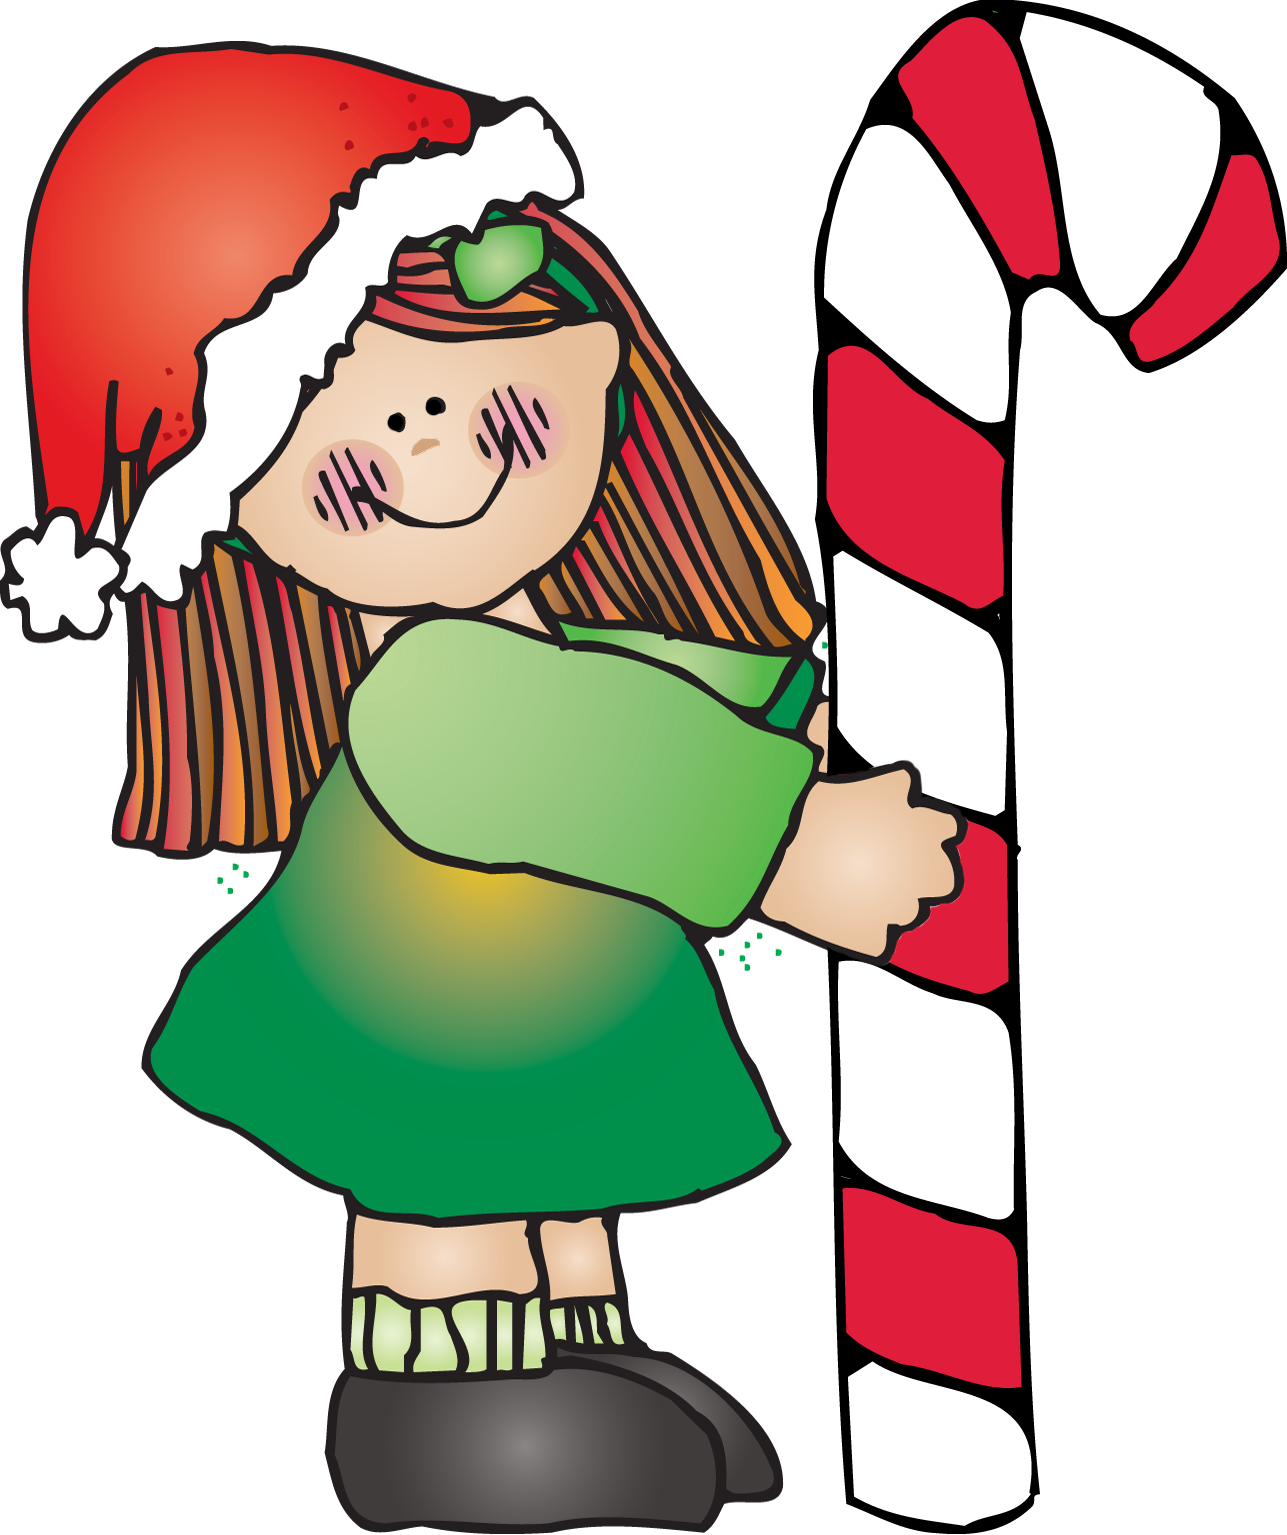 Christmas clipart borders black and white banner free download Christmas Clipart Black And White at GetDrawings.com | Free for ... banner free download